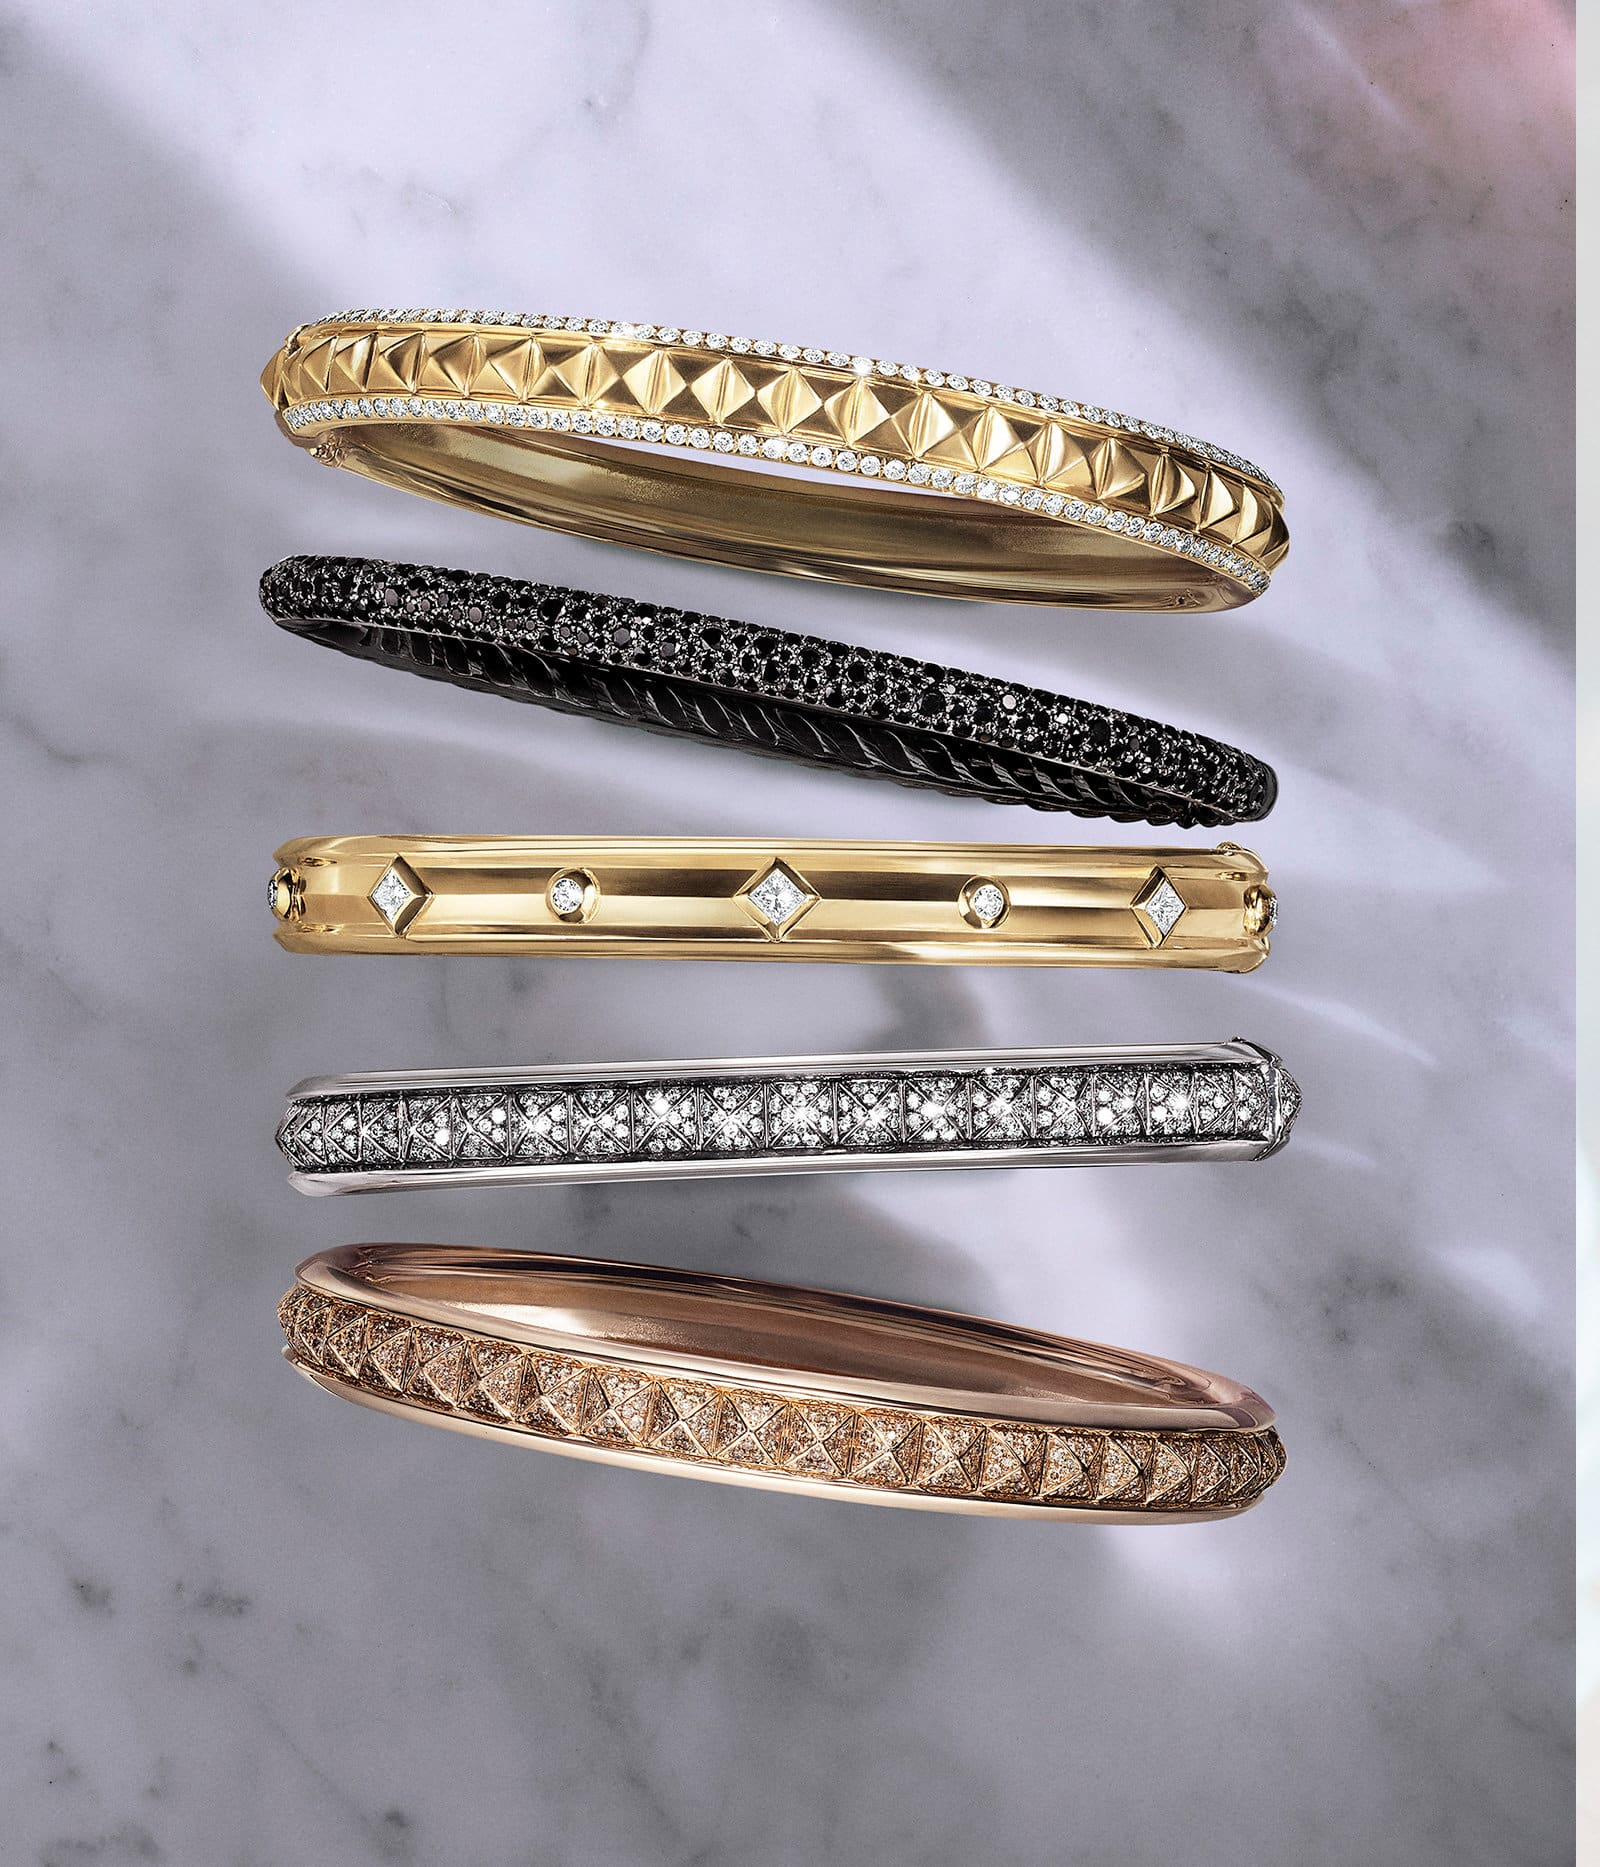 An image showing a vertical stack of five bangle bracelets from the Renaissance and Petite Pavé collections. he jewelry is crafted from 18K yellow, white or rose gold with white, cognac, grey or black diamonds.